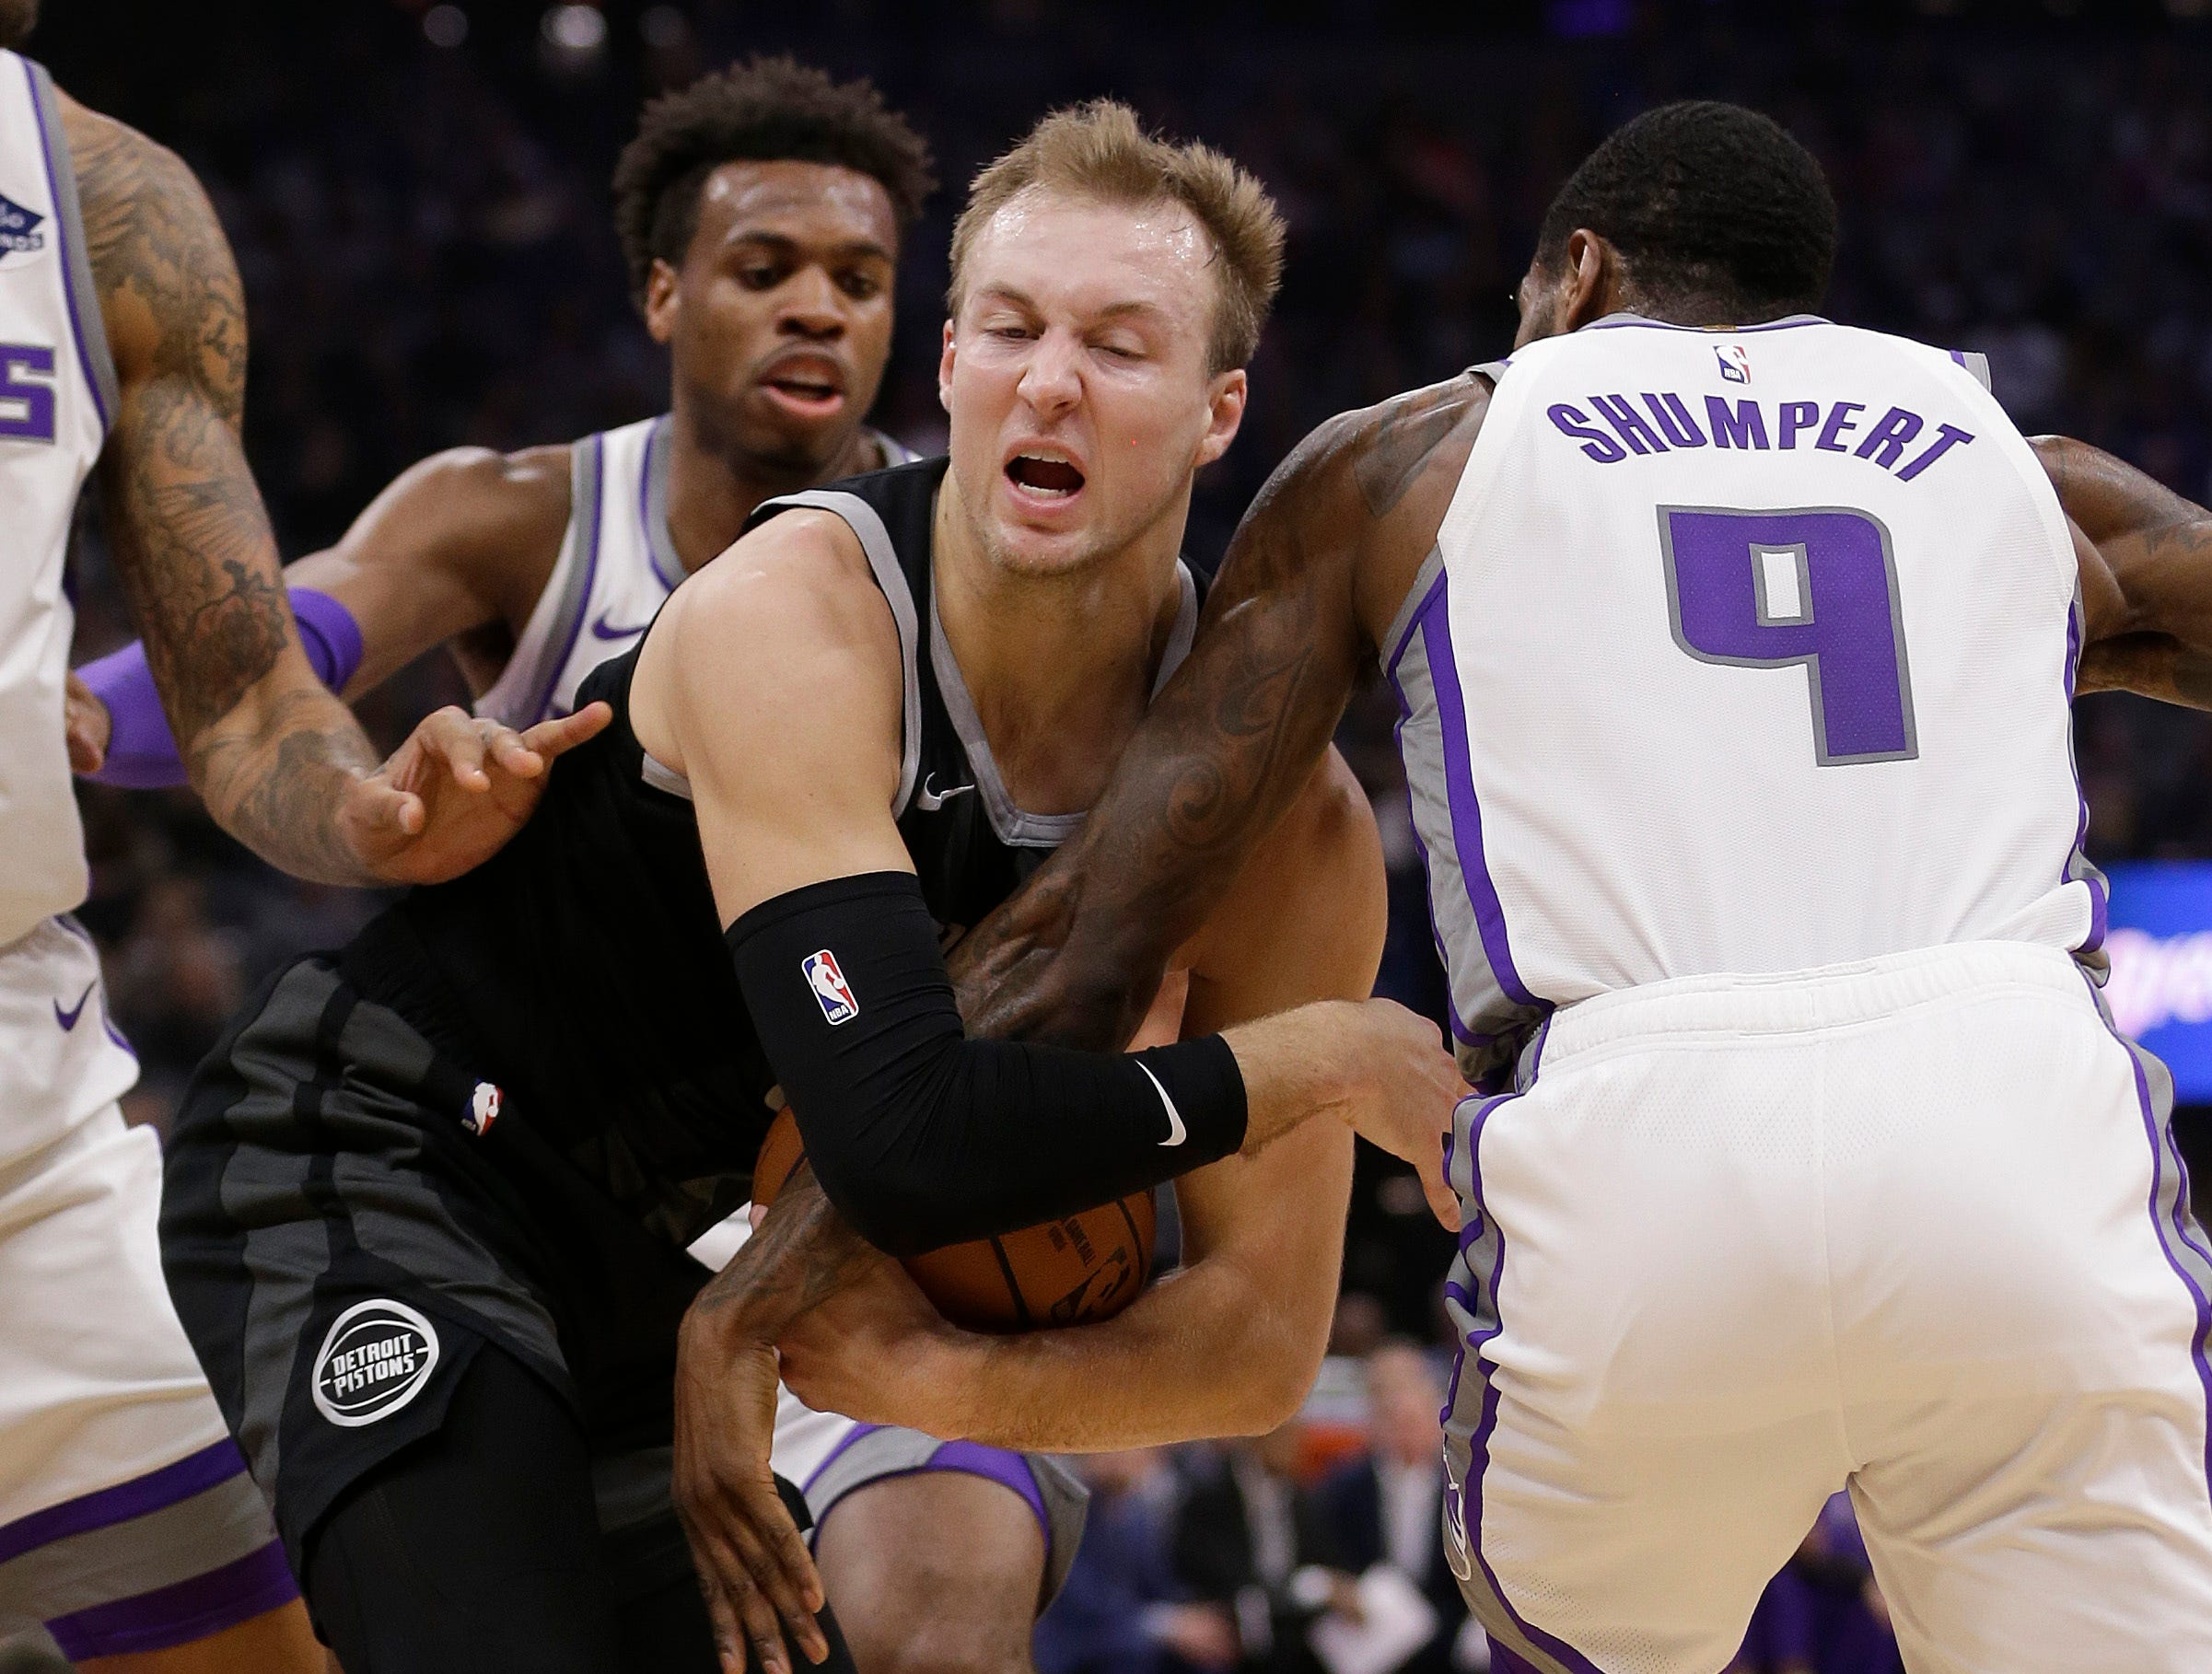 Detroit Pistons guard Luke Kennard, front left, tries to keep the ball from Sacramento Kings guard Iman Shumpert, right, during the first quarter of an NBA basketball game Thursday, Jan. 10, 2019, in Sacramento, Calif.